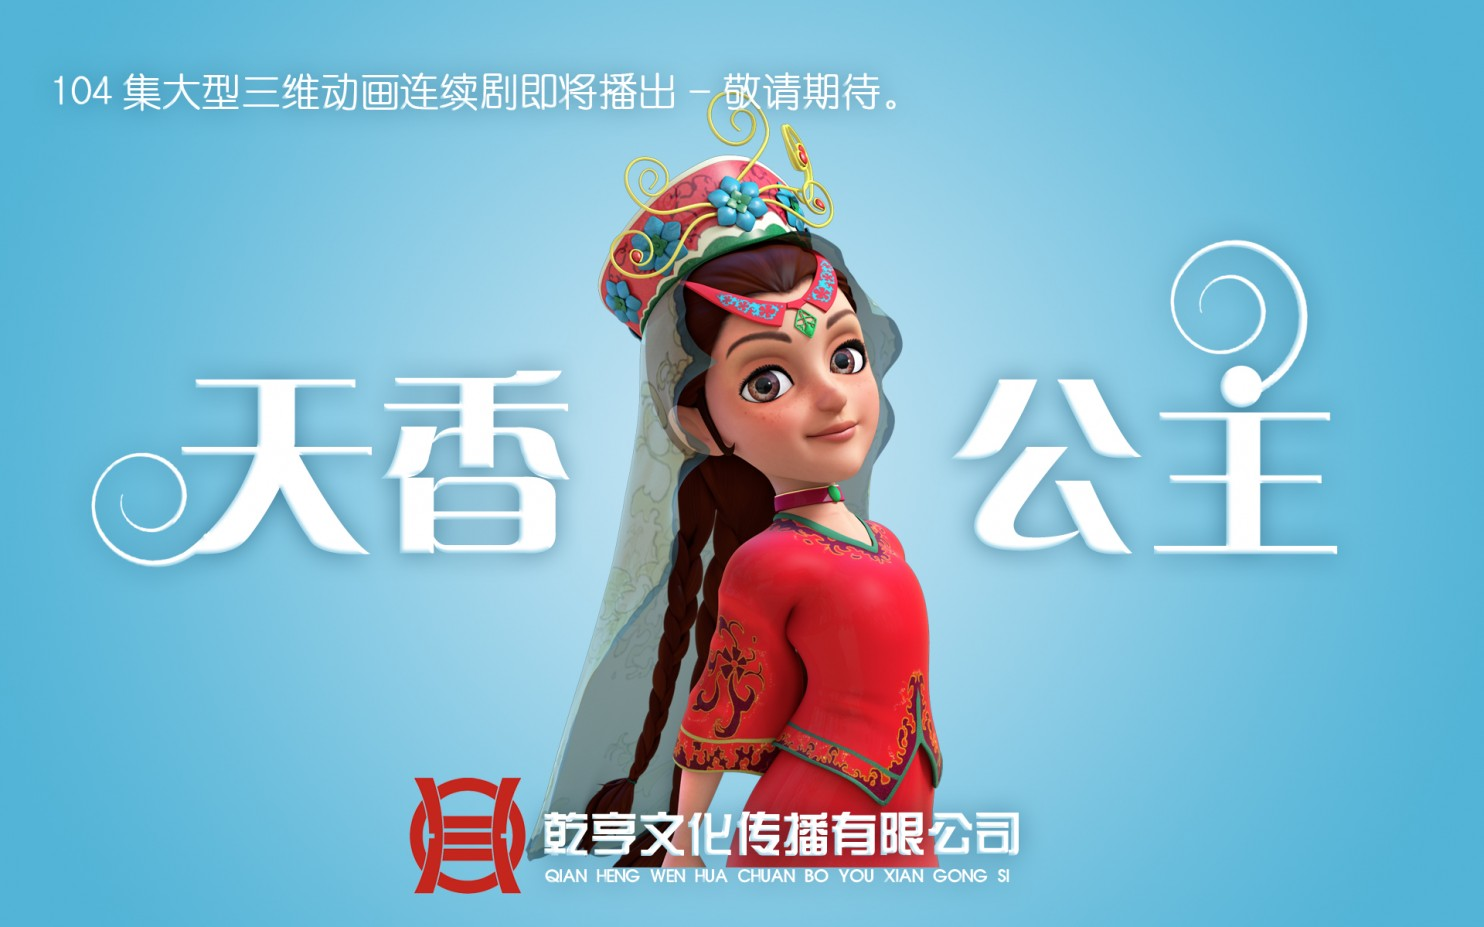 Can an Animated Princess Ease Ethnic Tensions in Xinjiang?